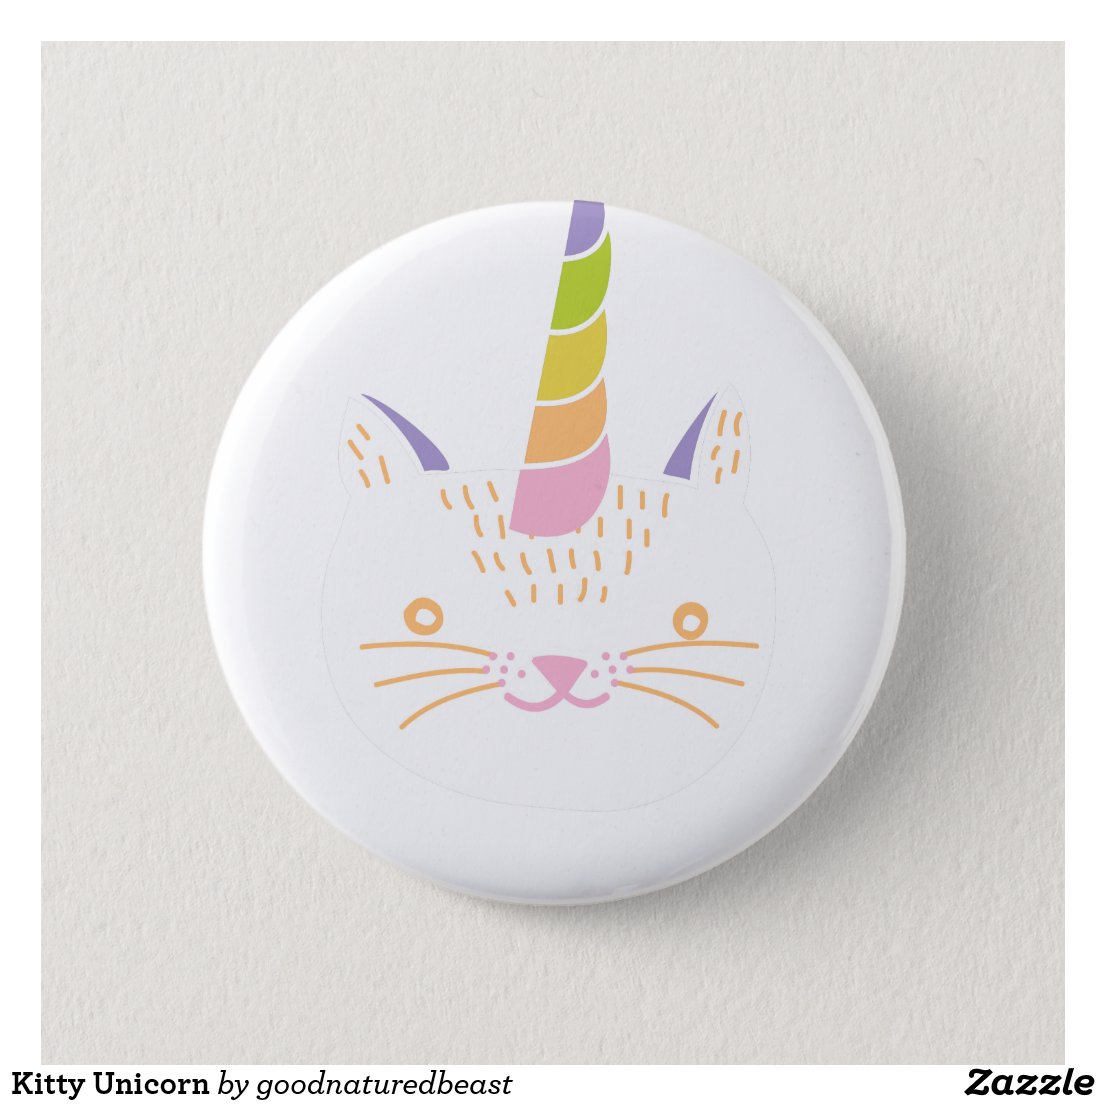 Kitty Unicorn Badge